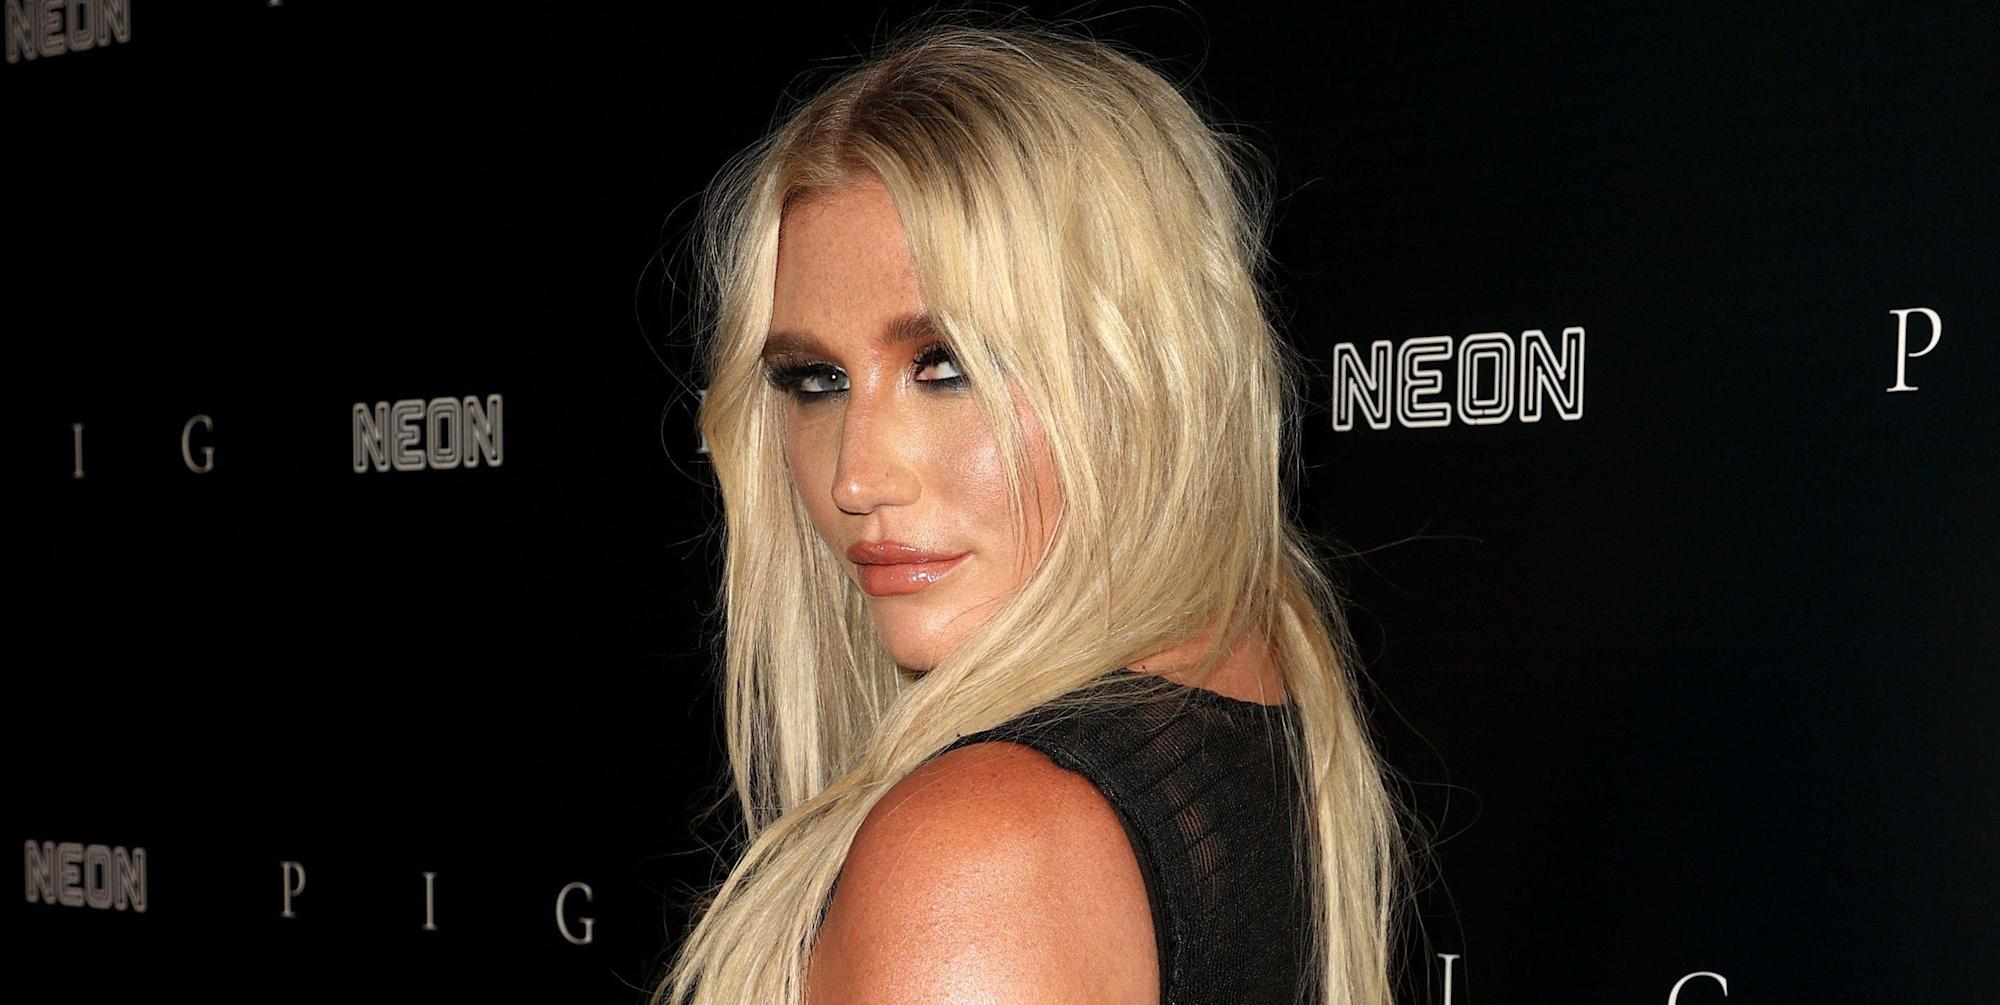 Kesha Looked Amazing in a Fully Sheer Thong Dress Last Night